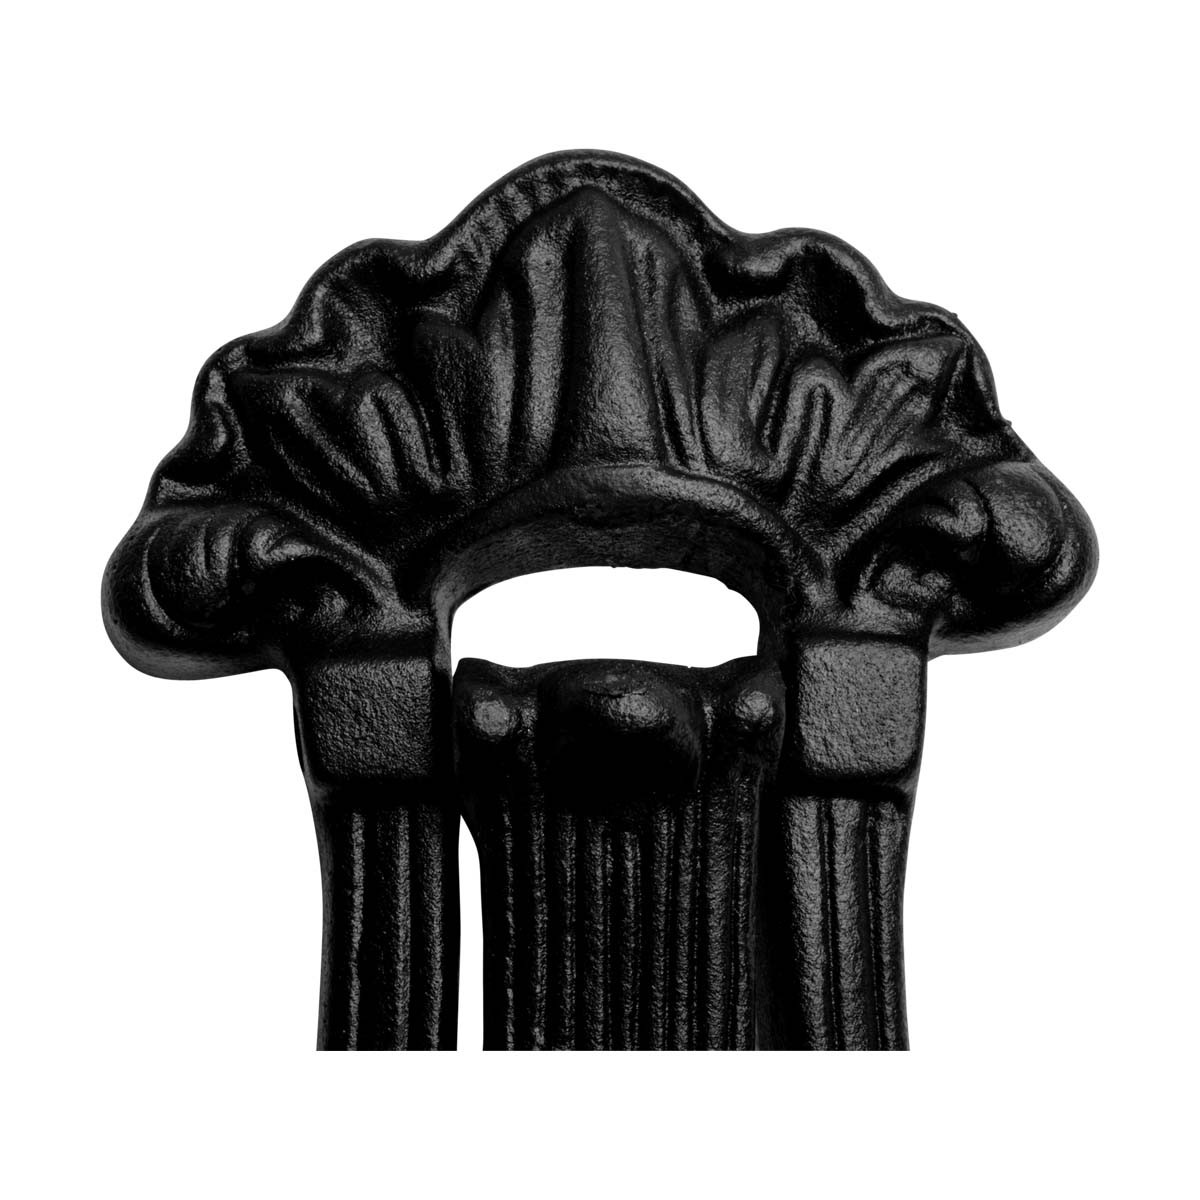 Black Door Knocker Cast Iron Door Knockers for Front Door 7 12 Inch X 4 Inch Cast Iron Front Door Knocker Antique Vintage Black Entry Way Door Knockers